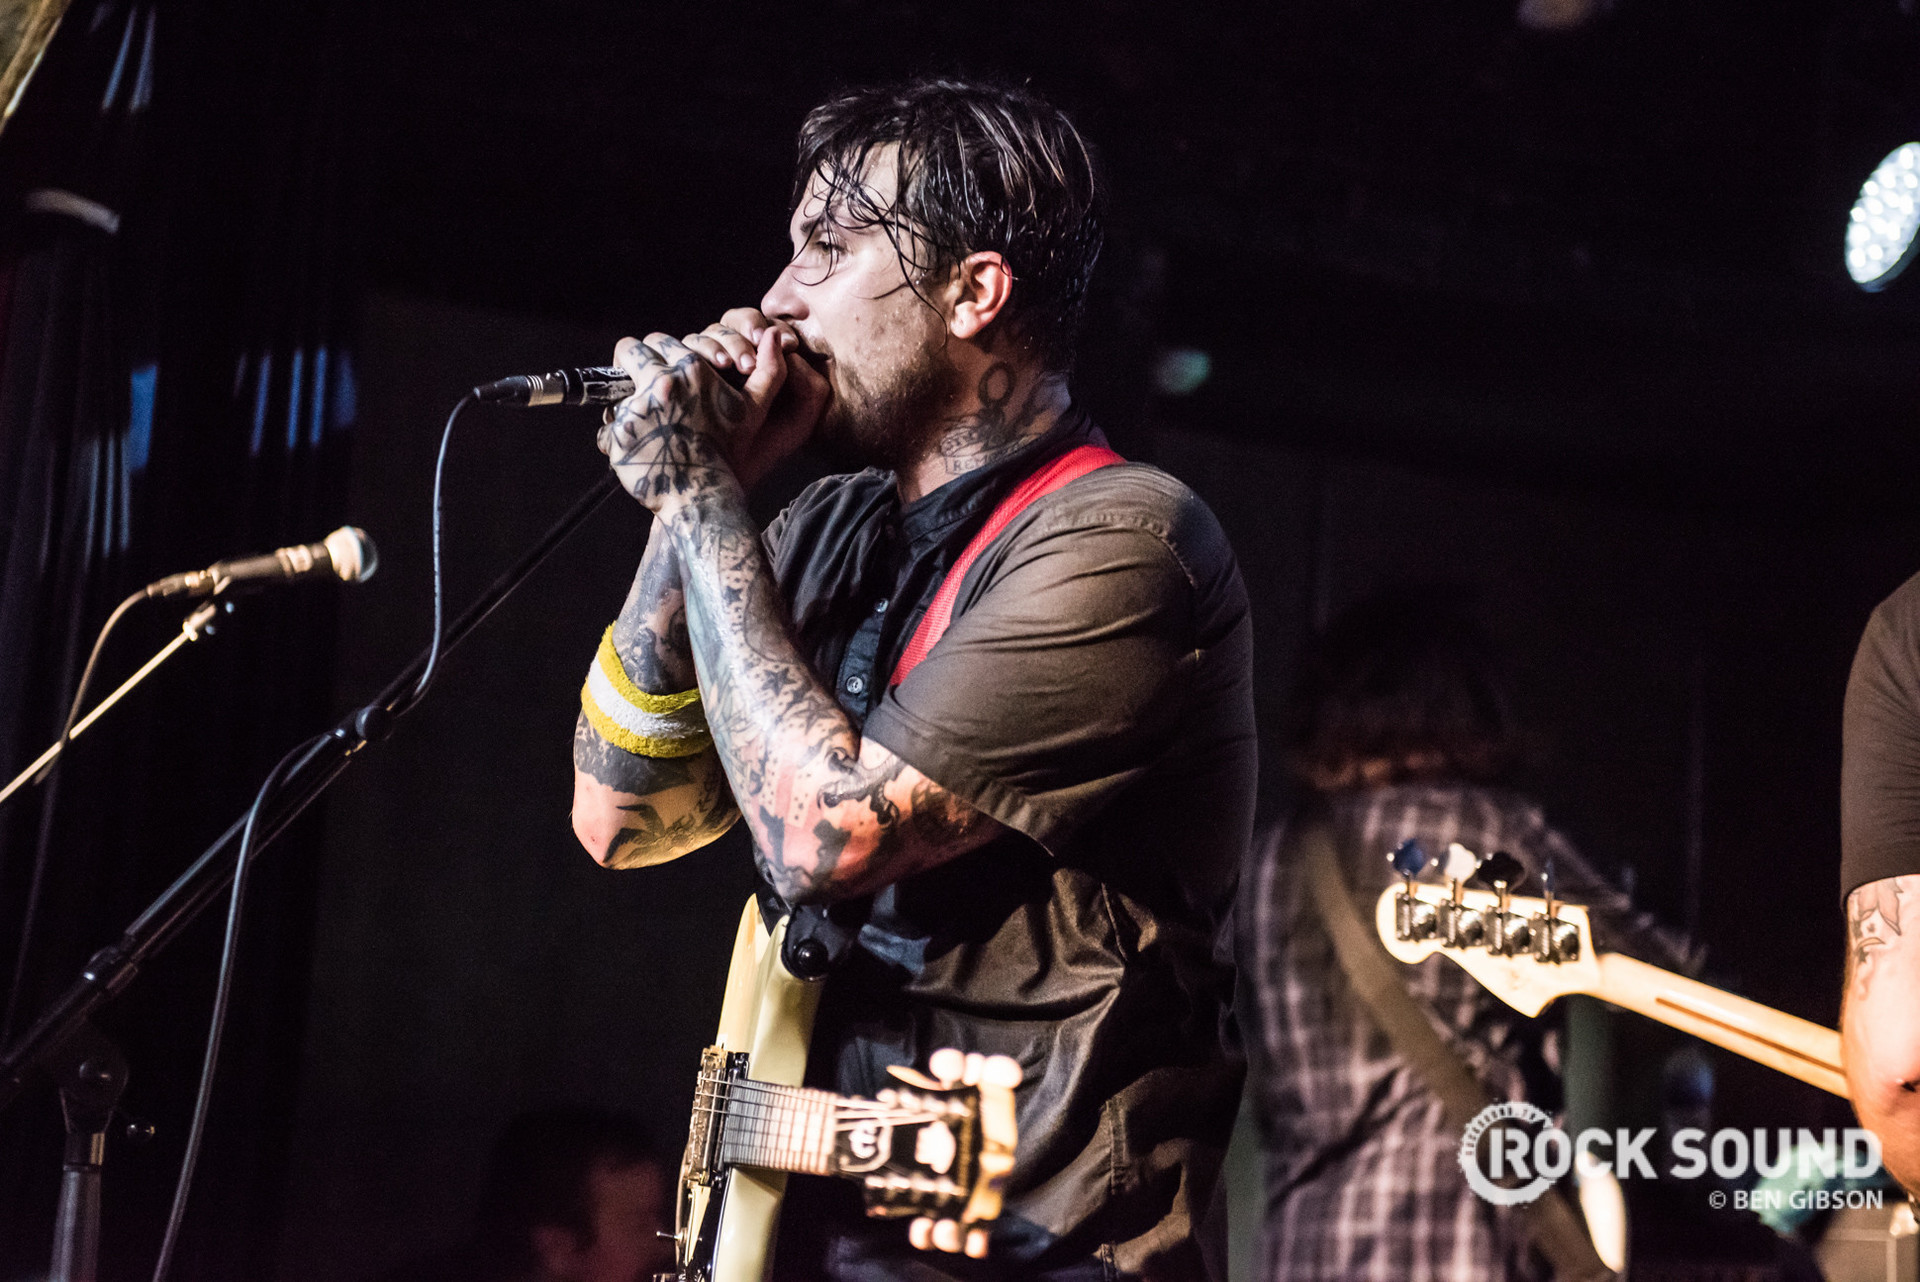 Frank Iero Tour 2020 Frank Iero's New Band Are Set To Support Taking Back Sunday On